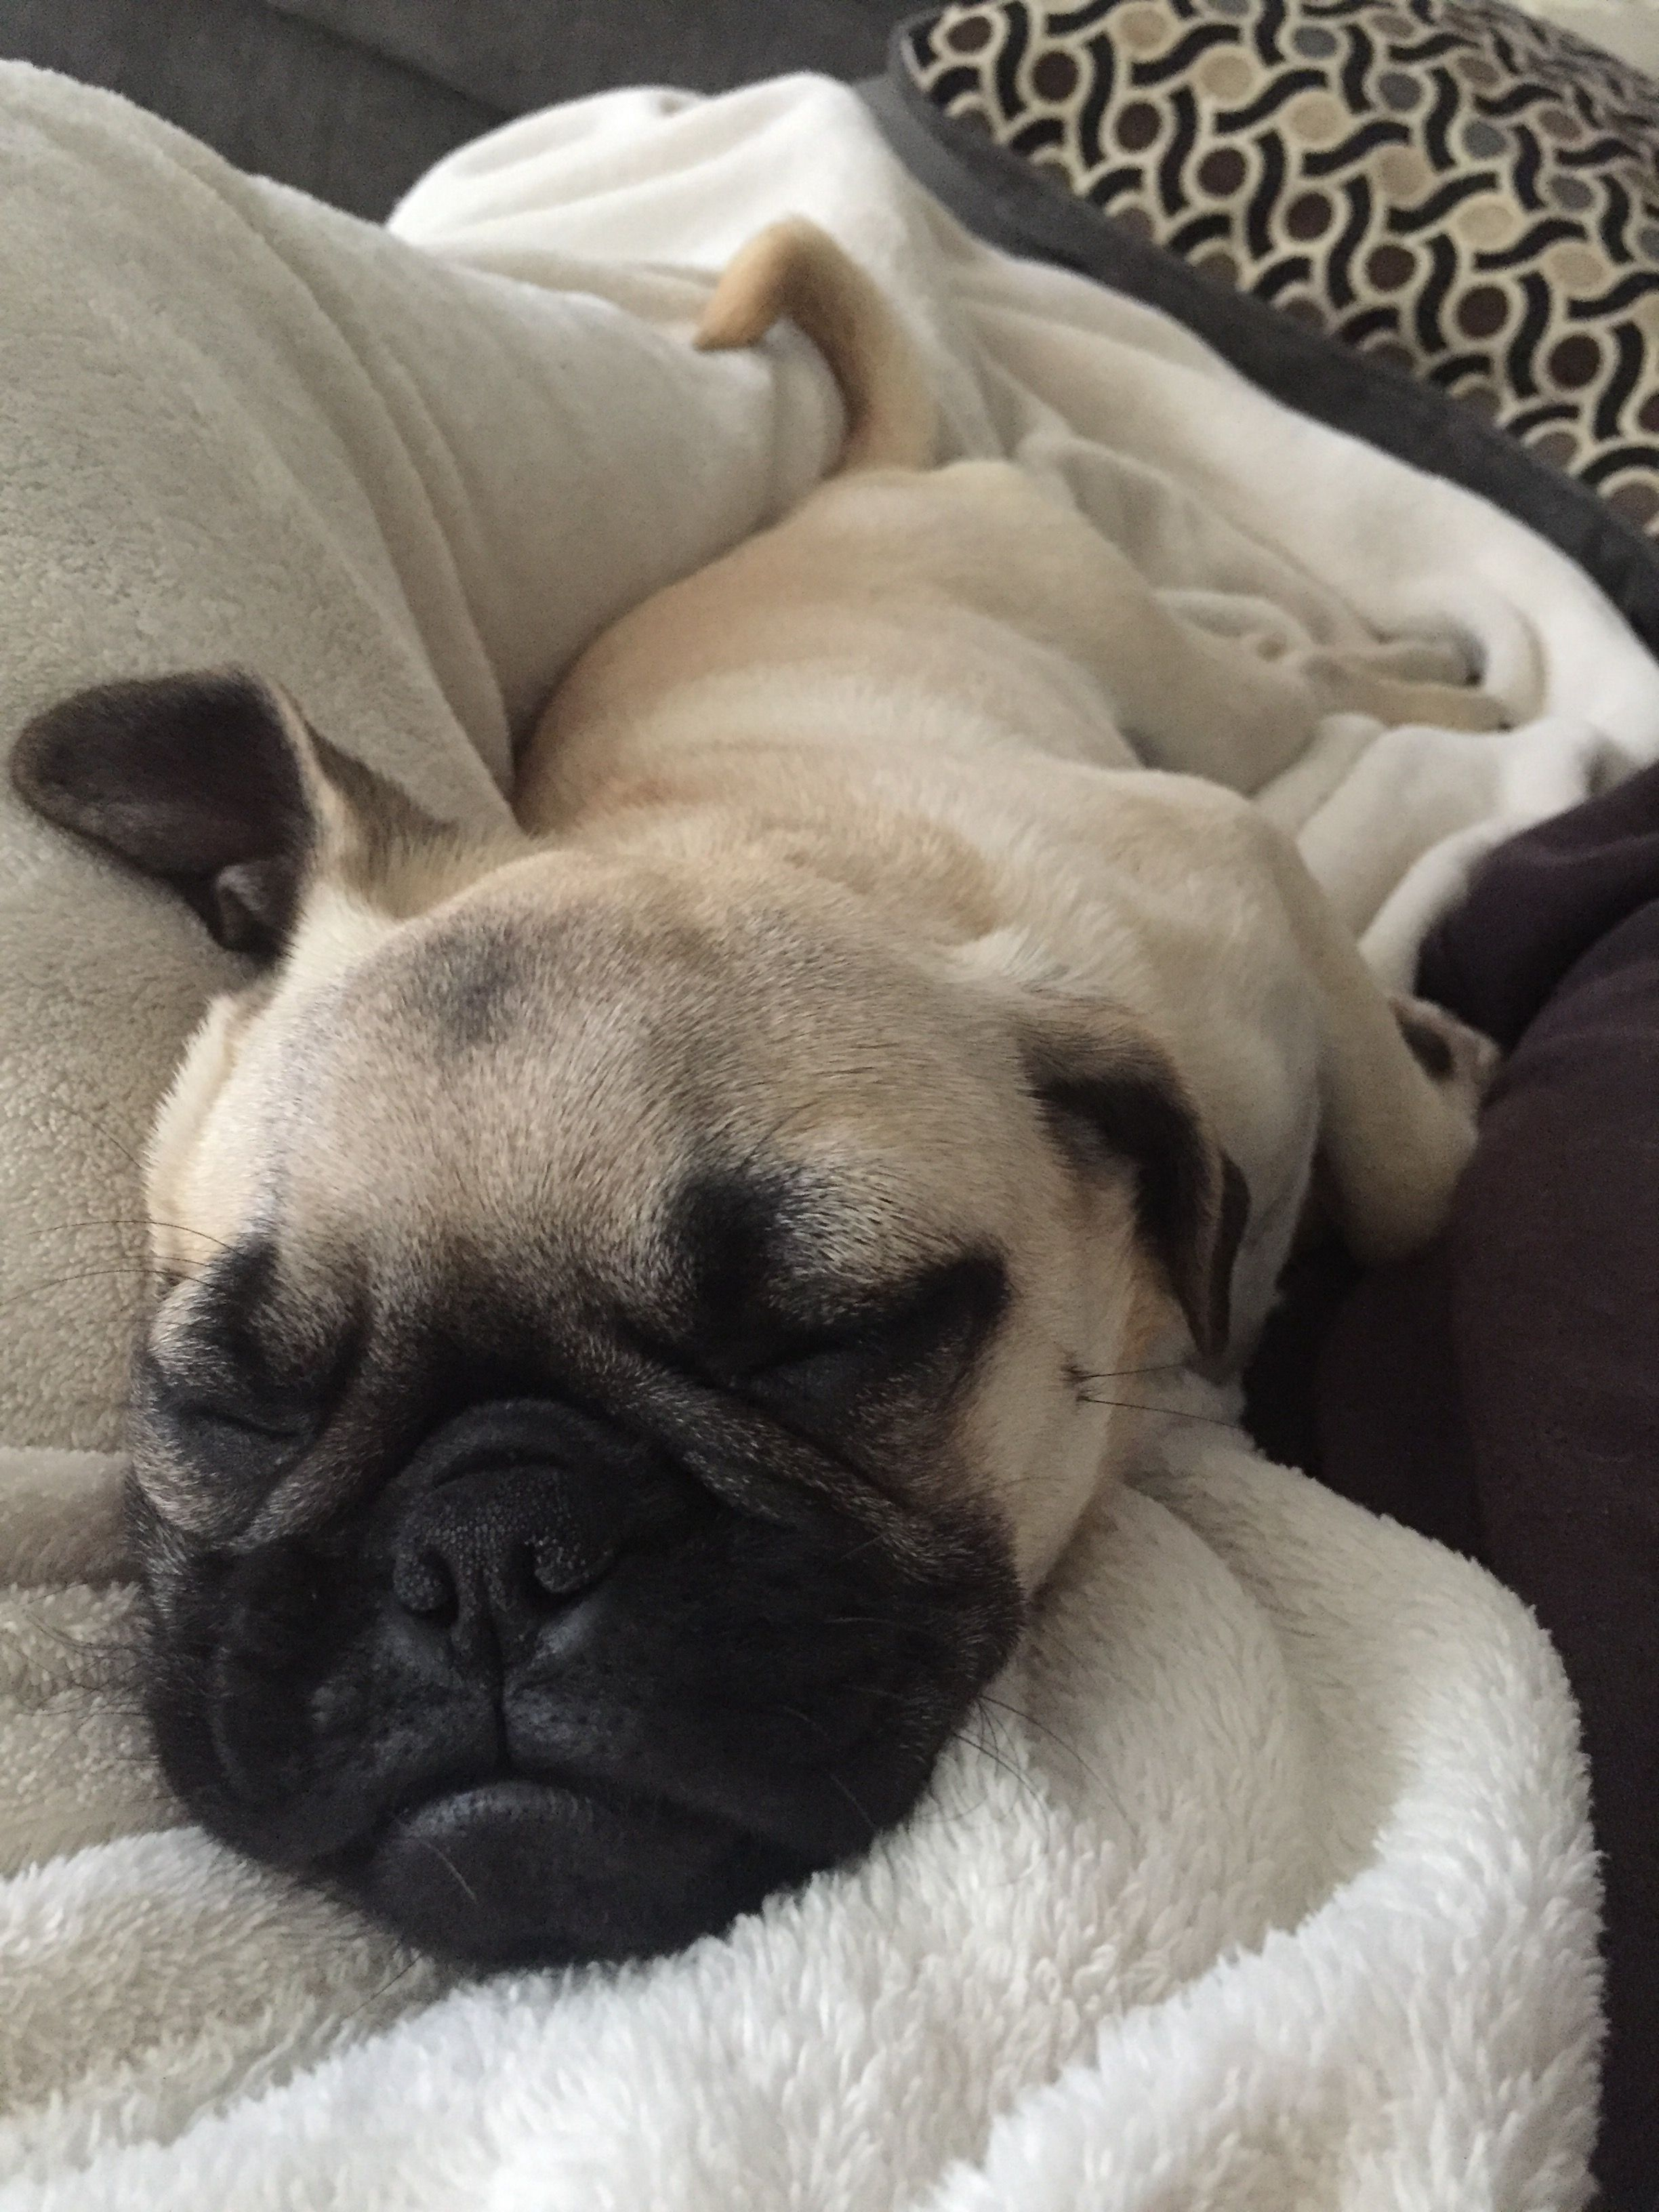 4 Month Old Pug Snoozing Cute Pugs Old Pug Pugs